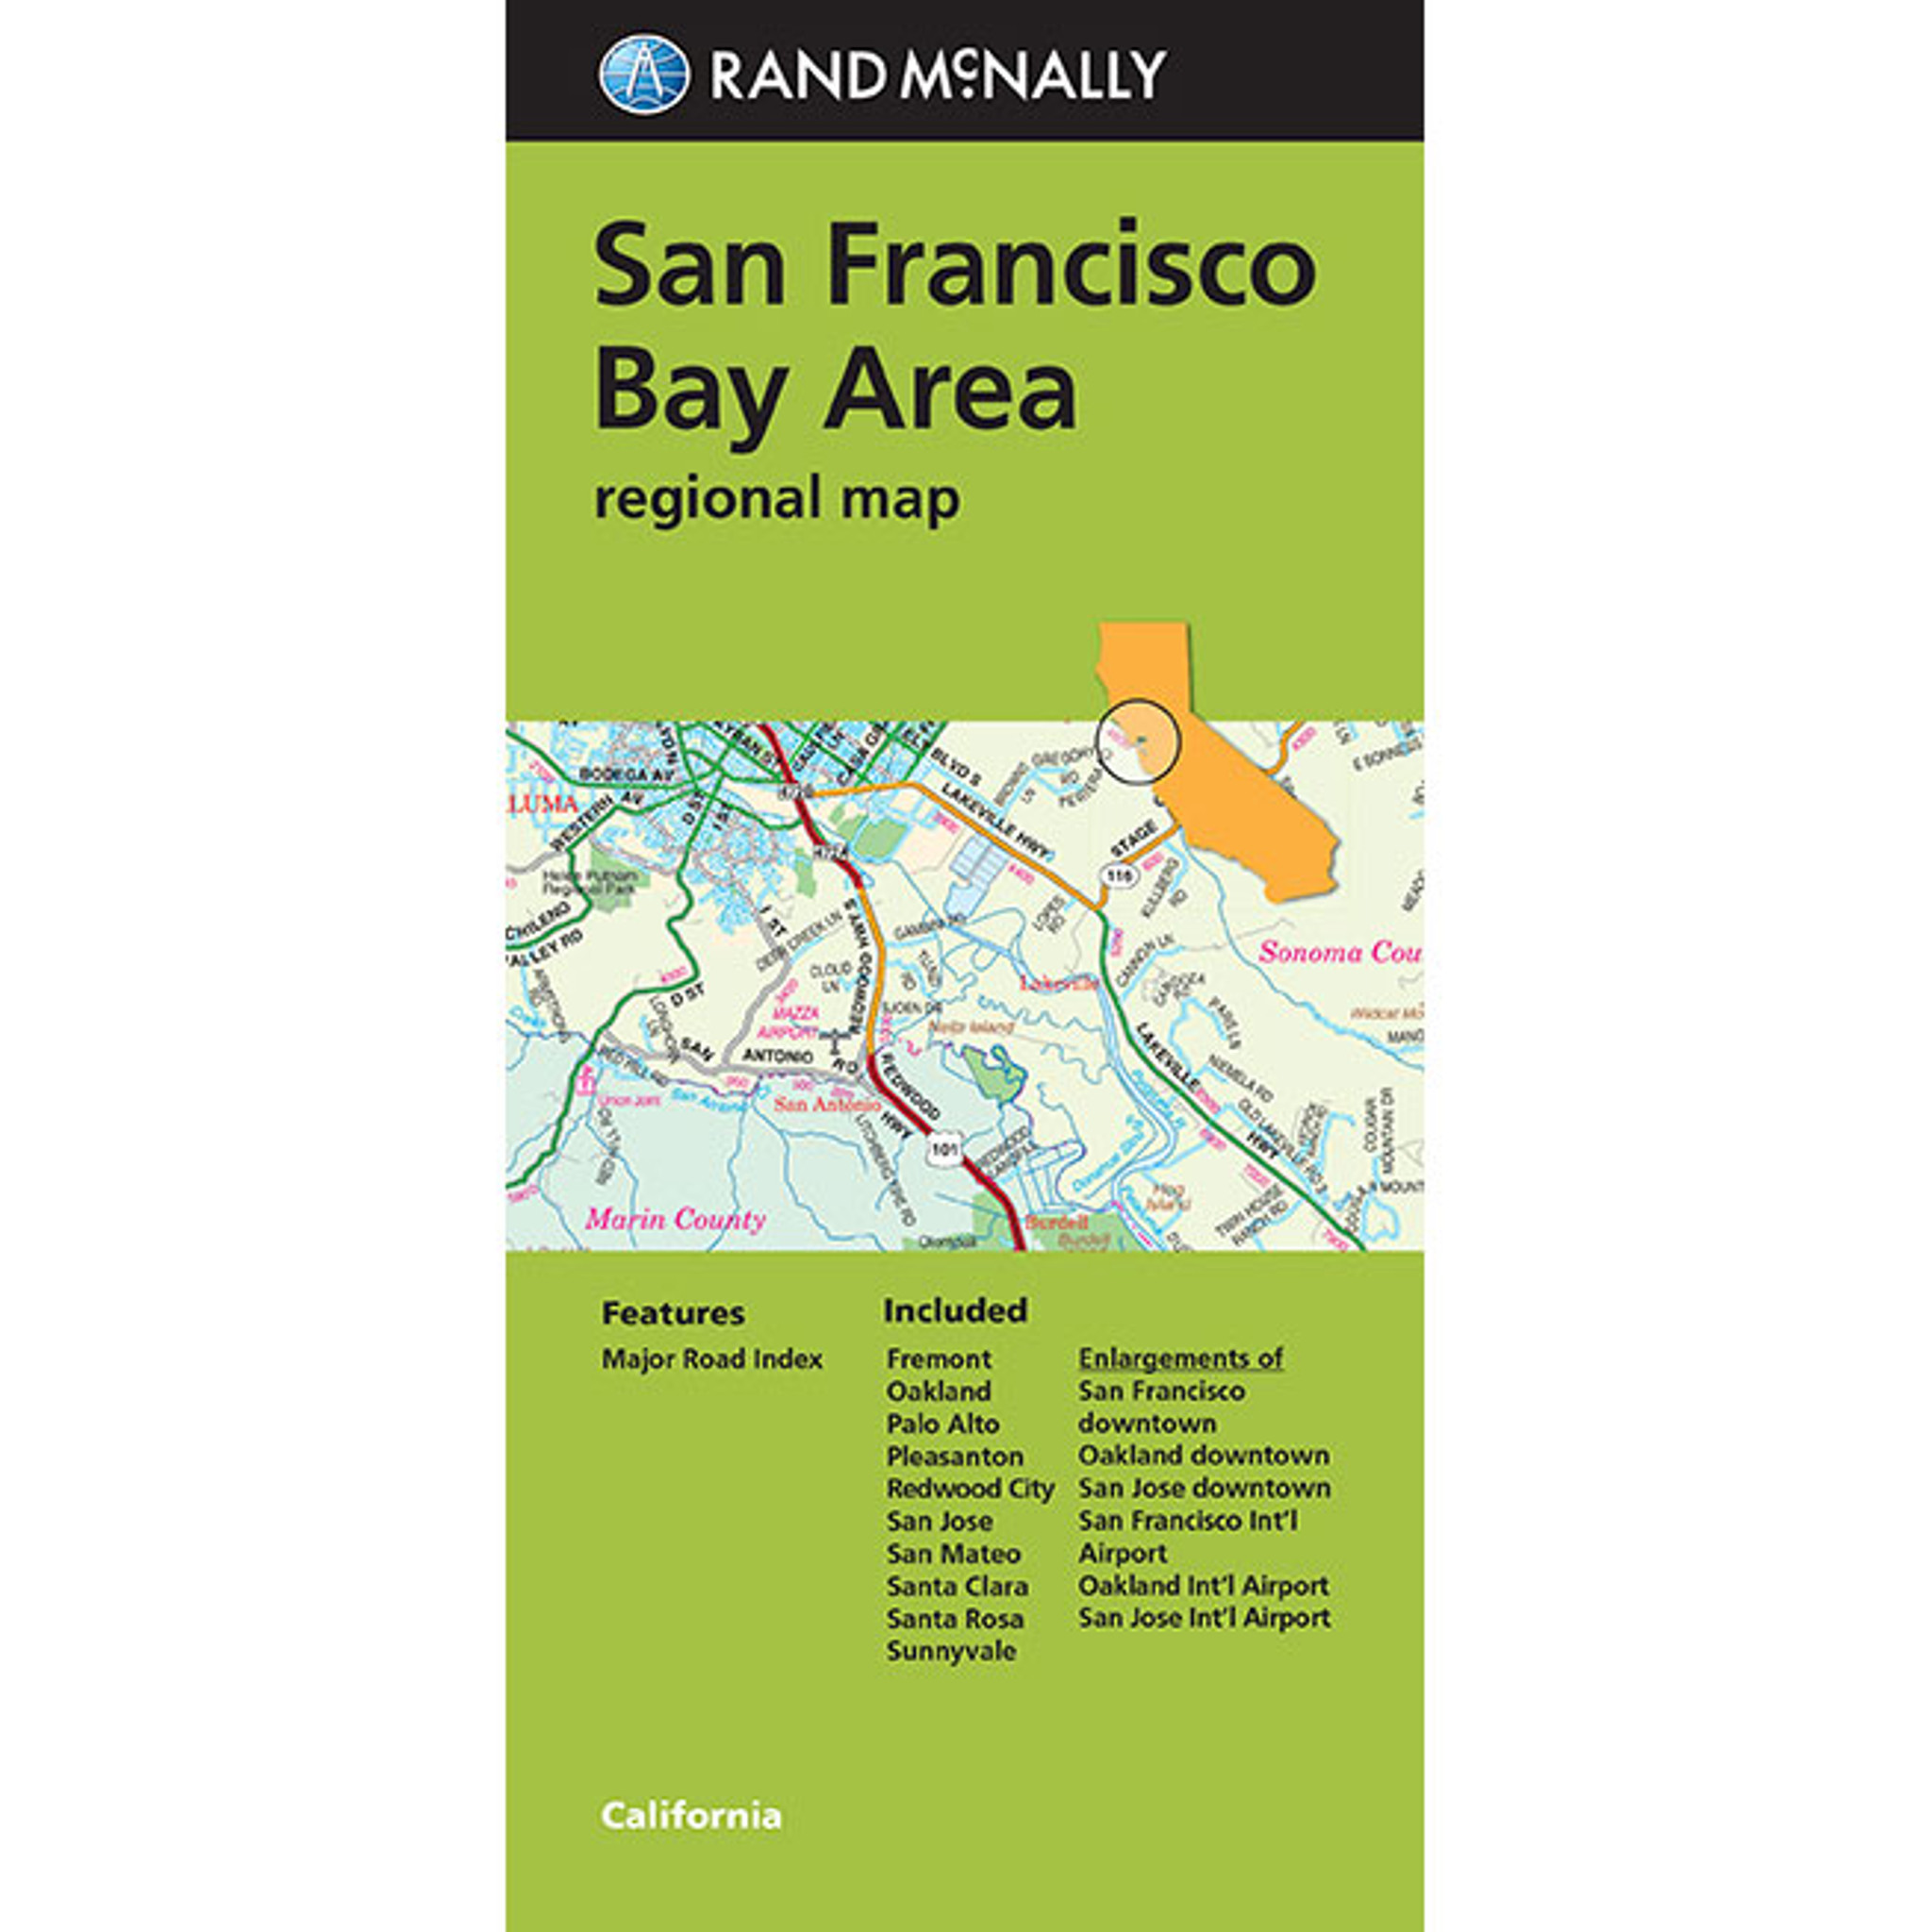 Folded Maps San Francisco This is a digital file, no physical items will be sent. folded map san francisco bay area folded regional map